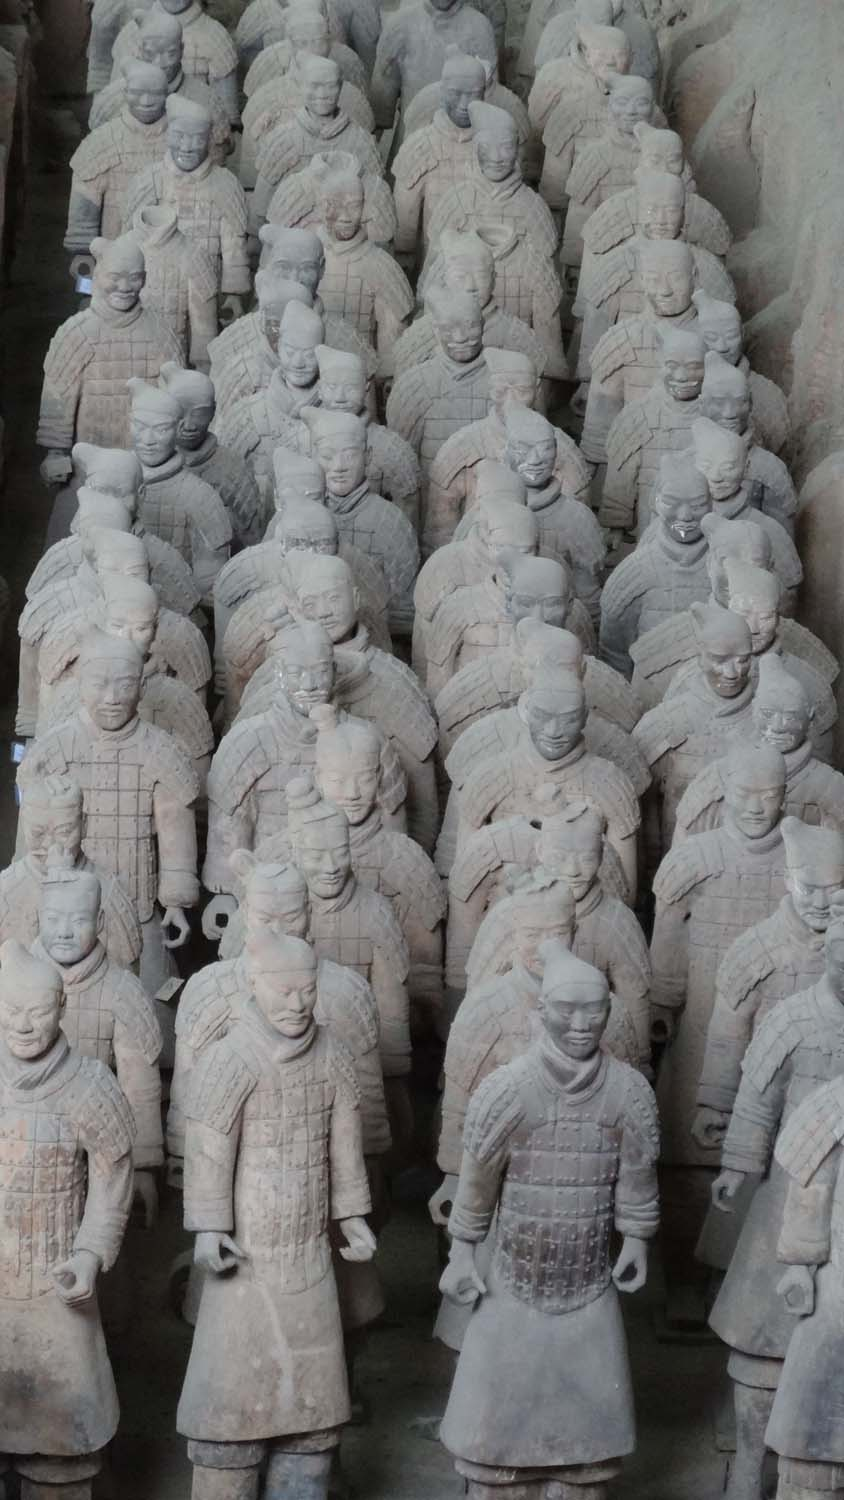 they are all life-size, quite tall for Chinese at the time as they were all selected for their height